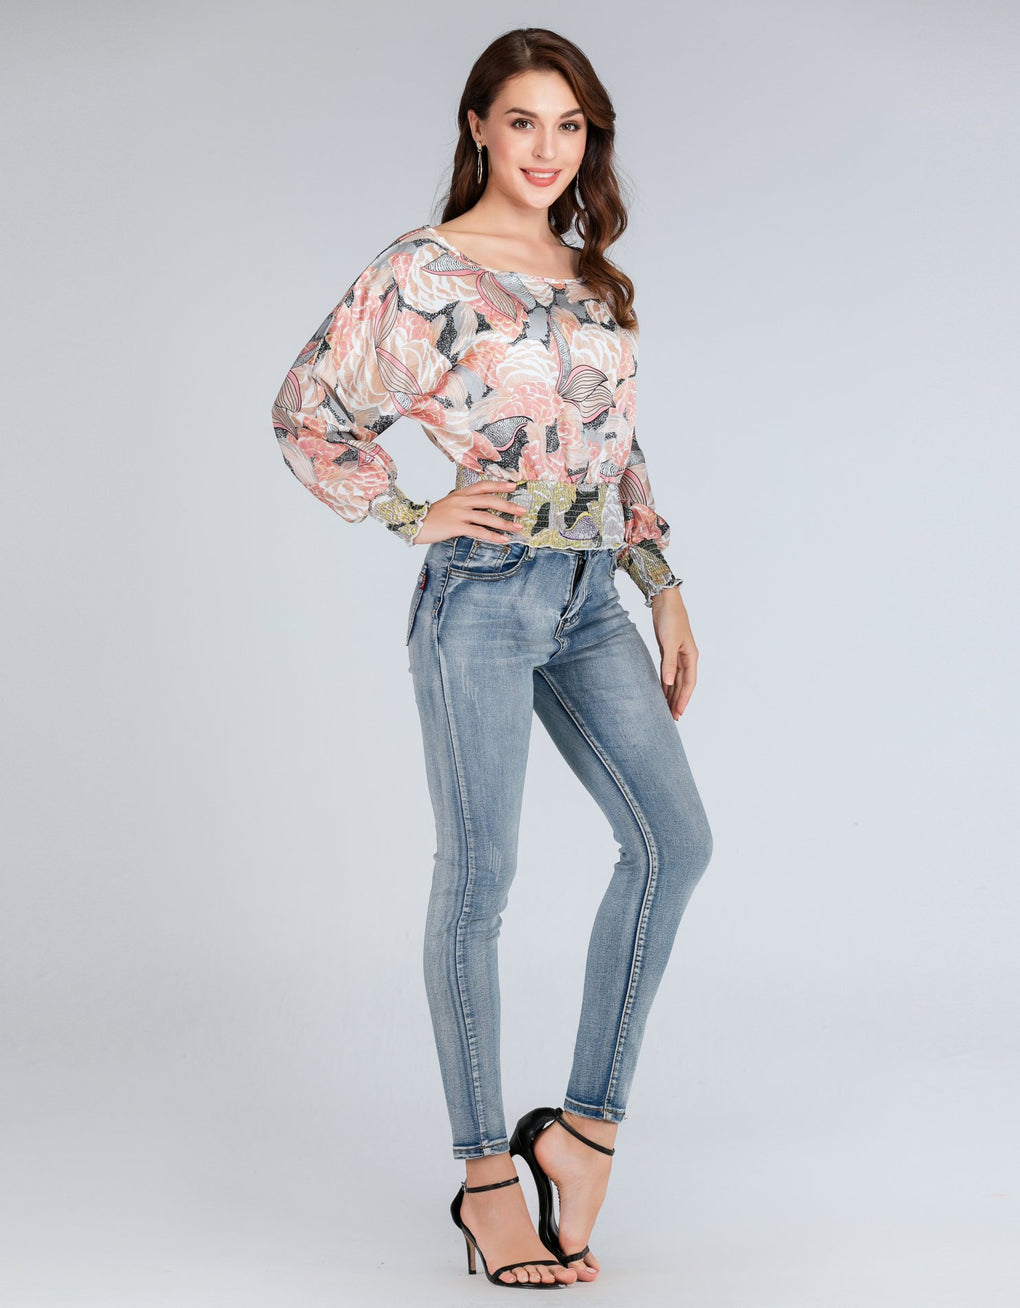 Long-sleeved Floral Blouse